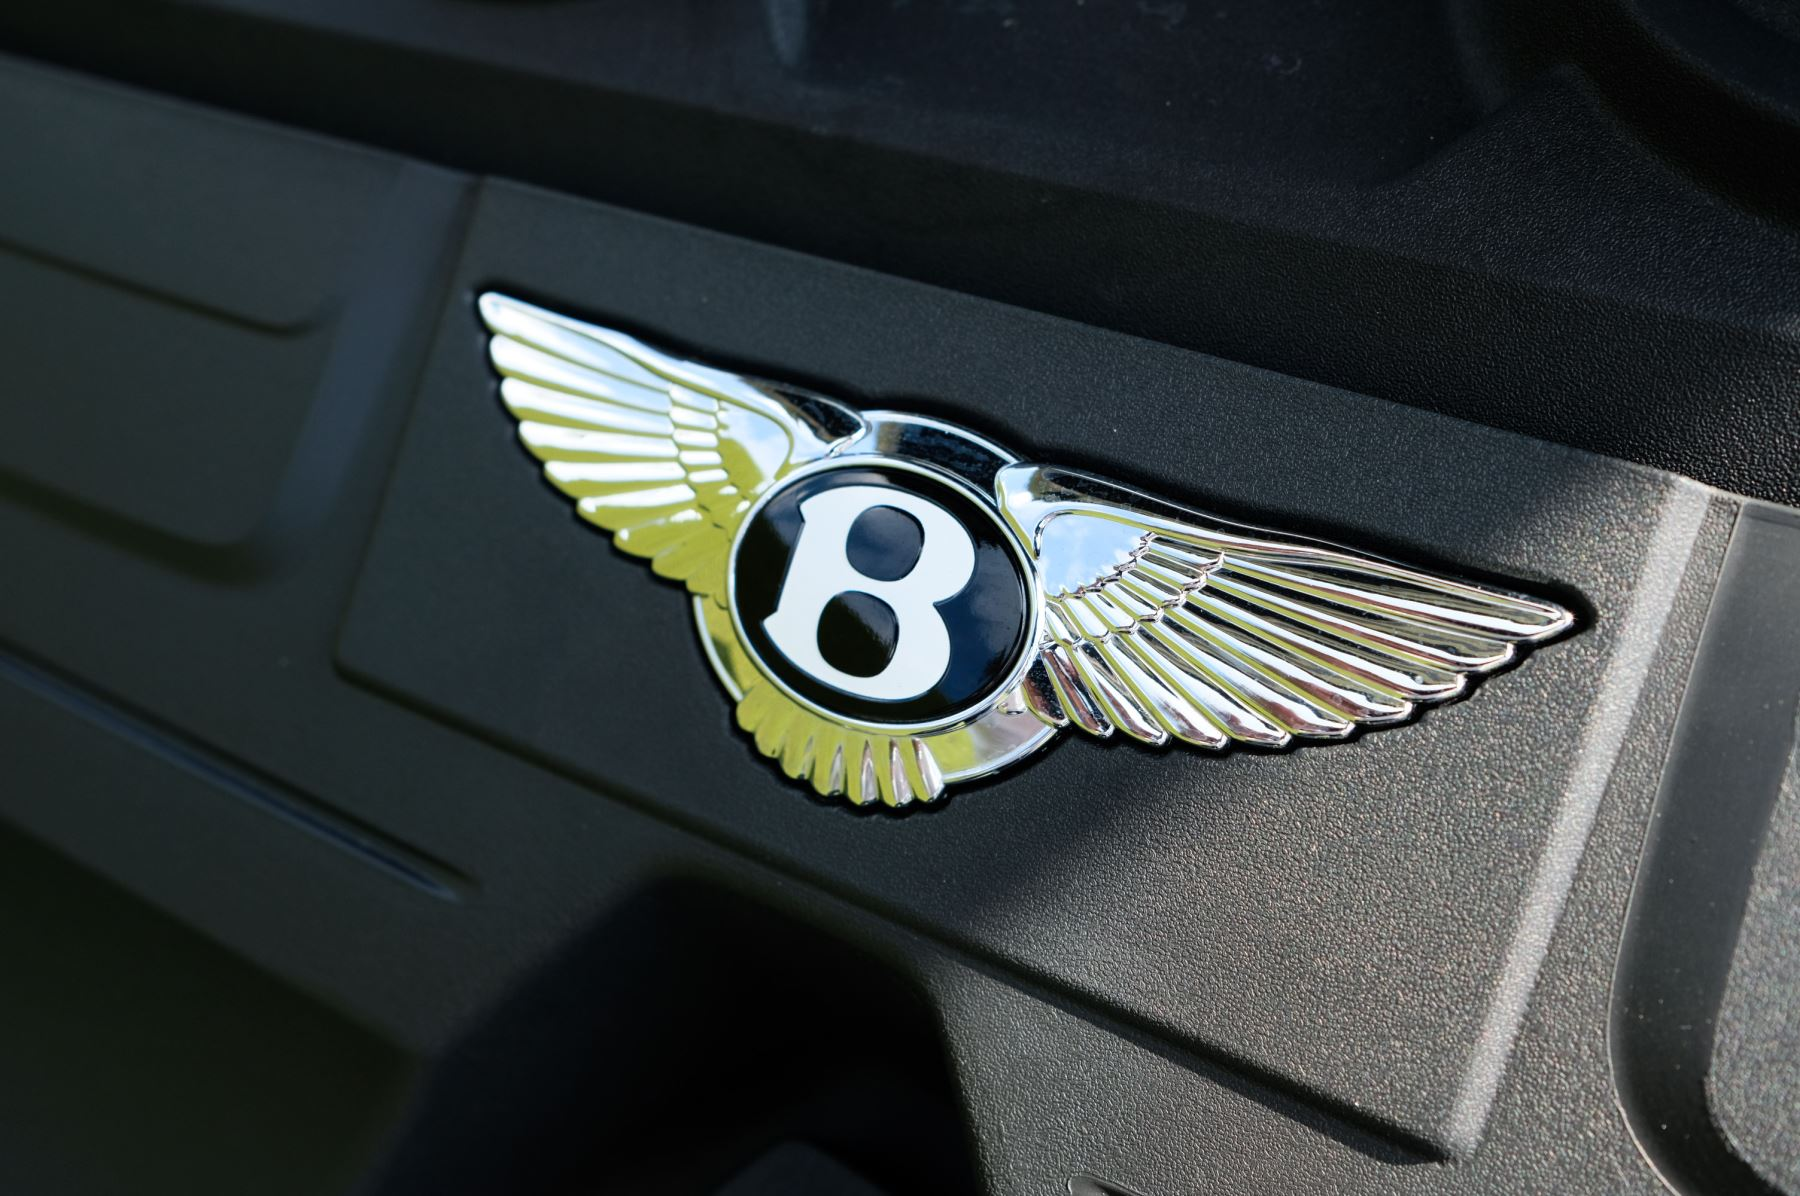 Bentley Continental GT 4.0 V8 - Mulliner Driving Specification with Black Painted Wheels - Touring and Centenary Spec image 22